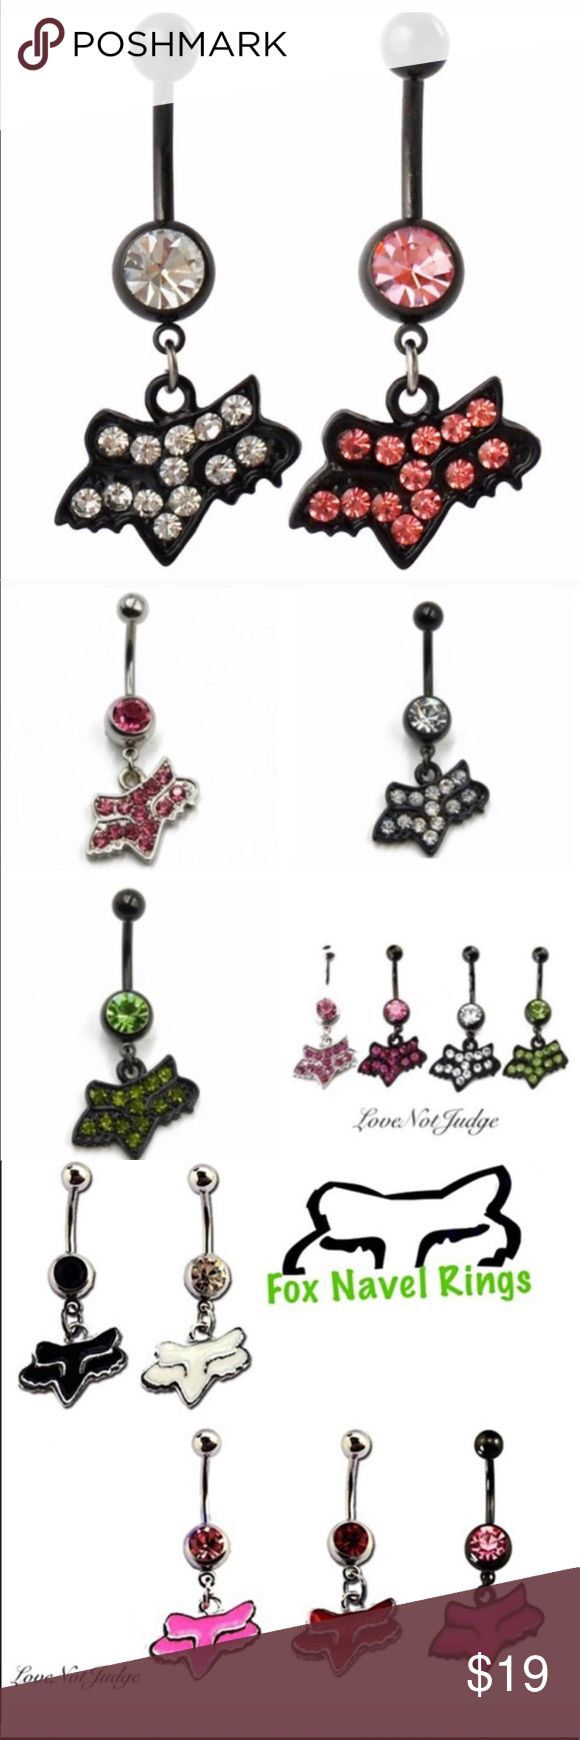 Nwt 2 Set Fox Racing Bling Navel Belly Button Ring Boutique